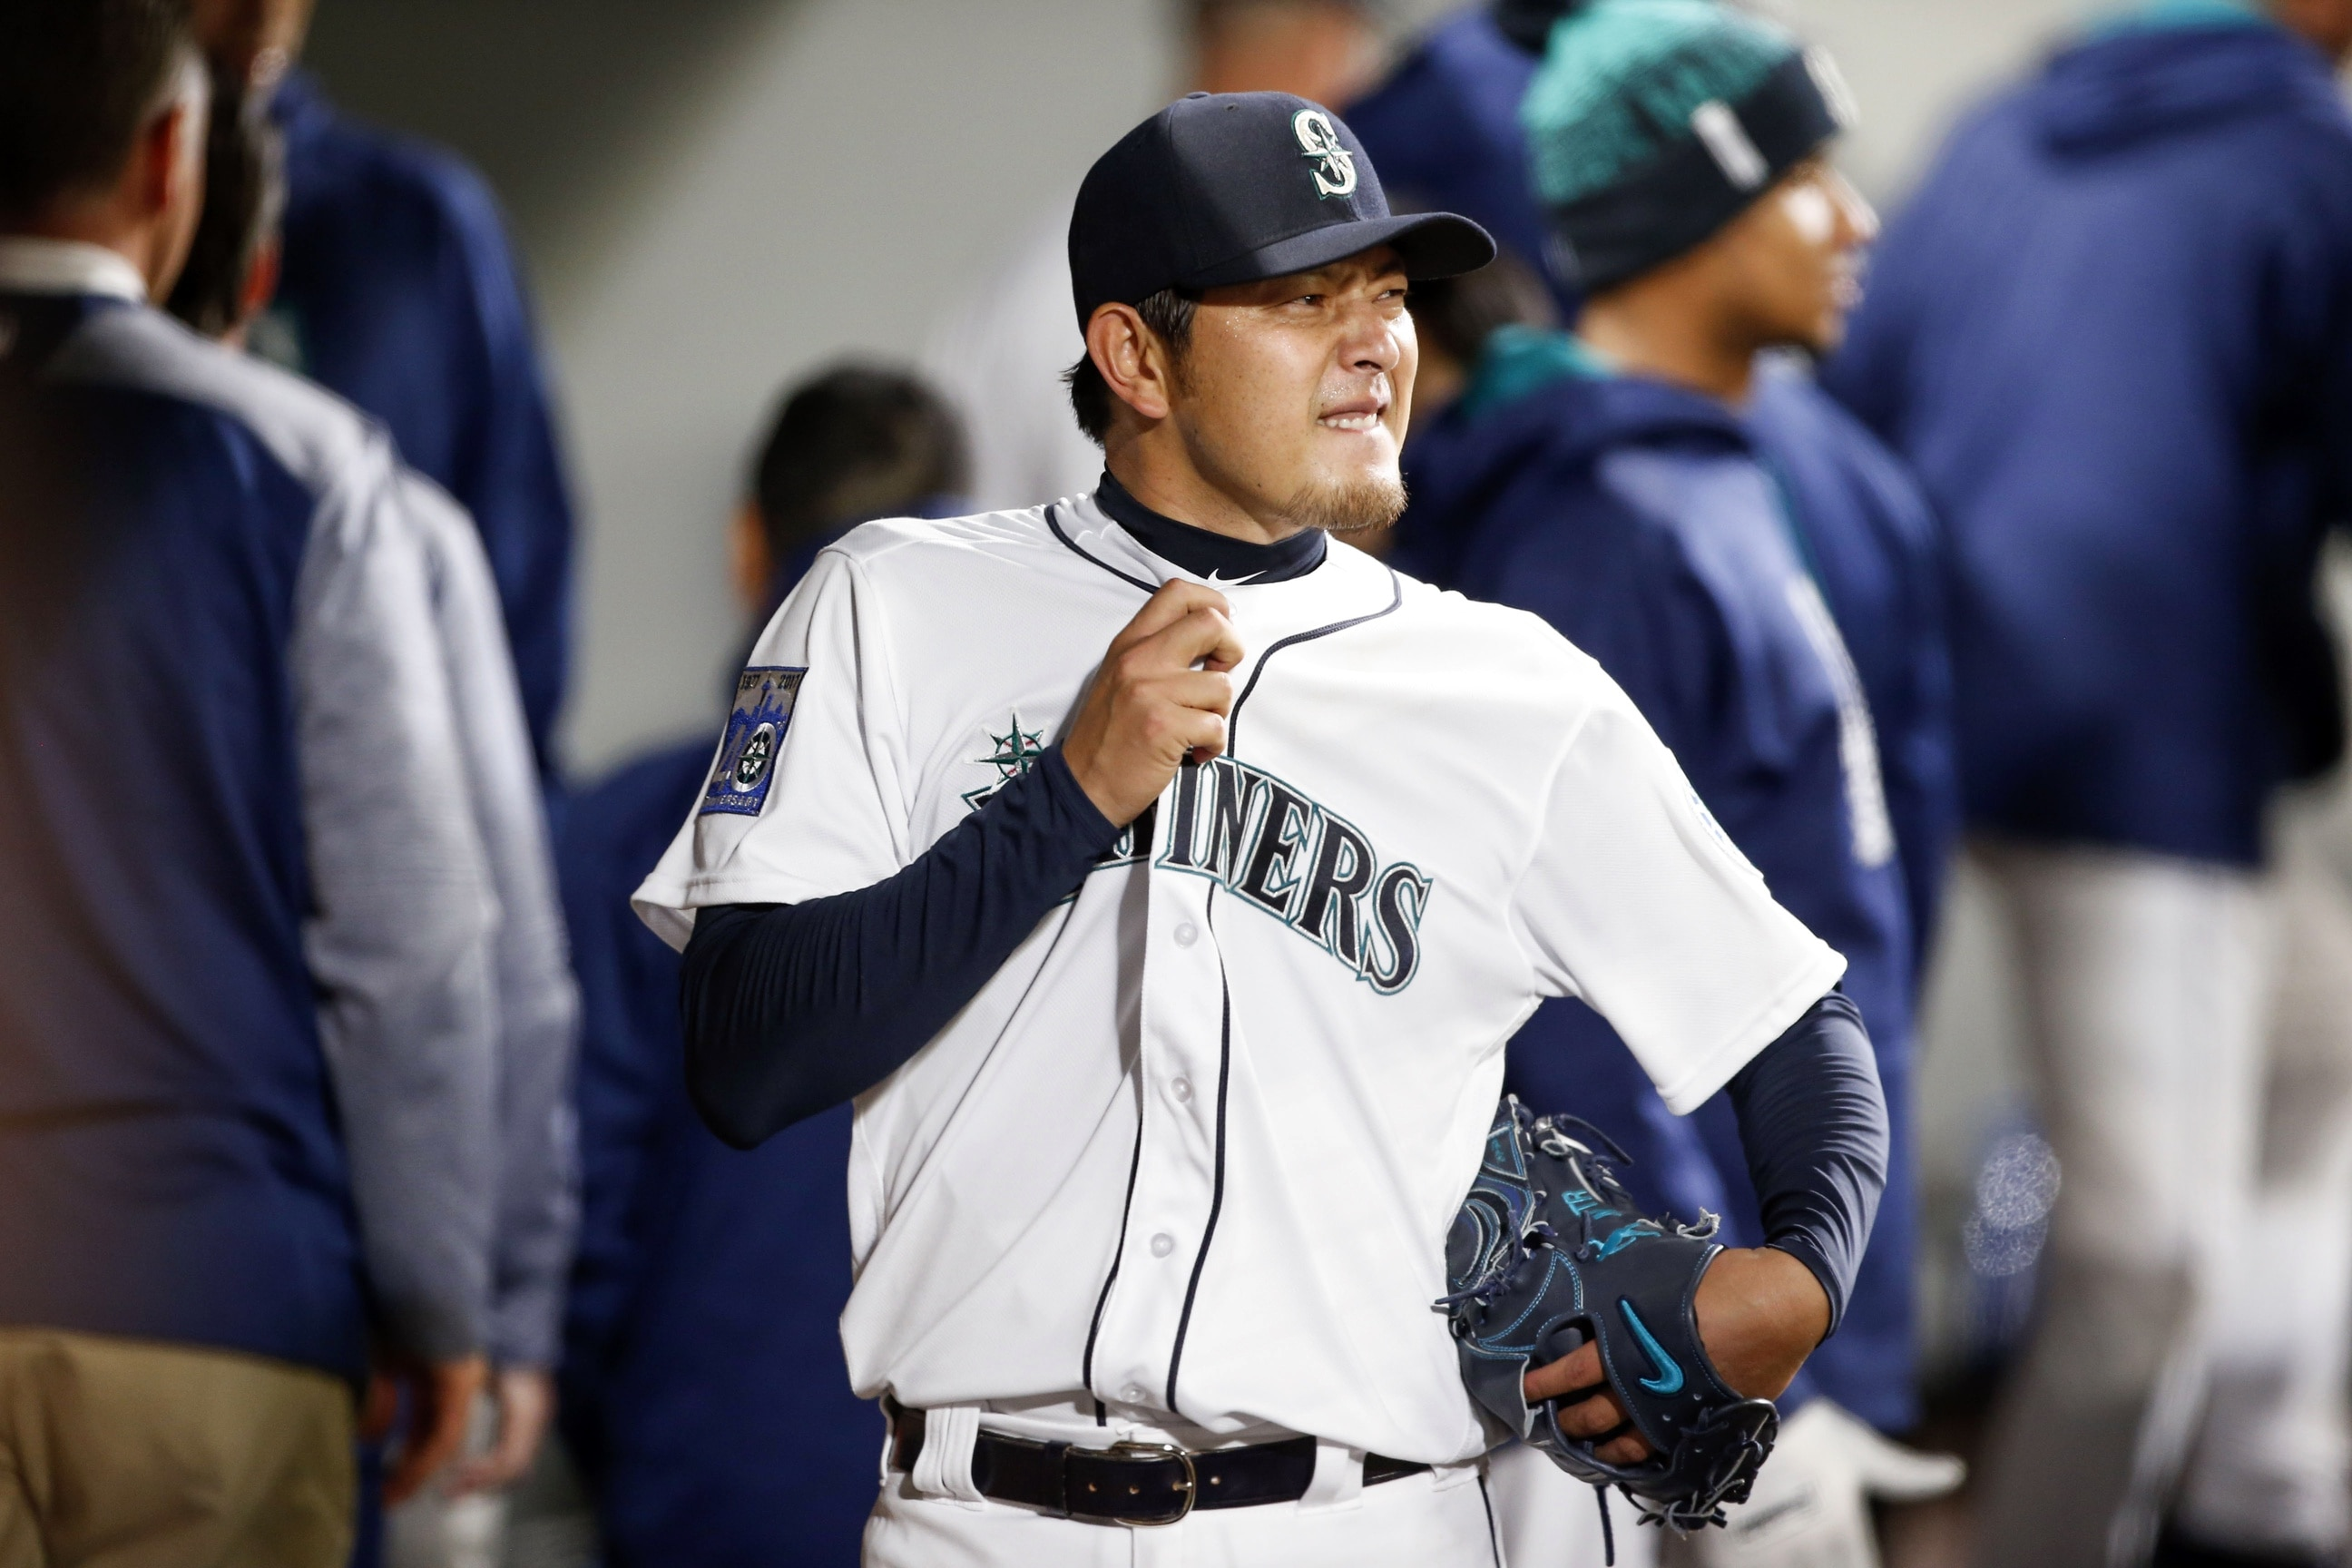 Hisashi Iwakuma will be out 4-6 weeks with a shoulder injury